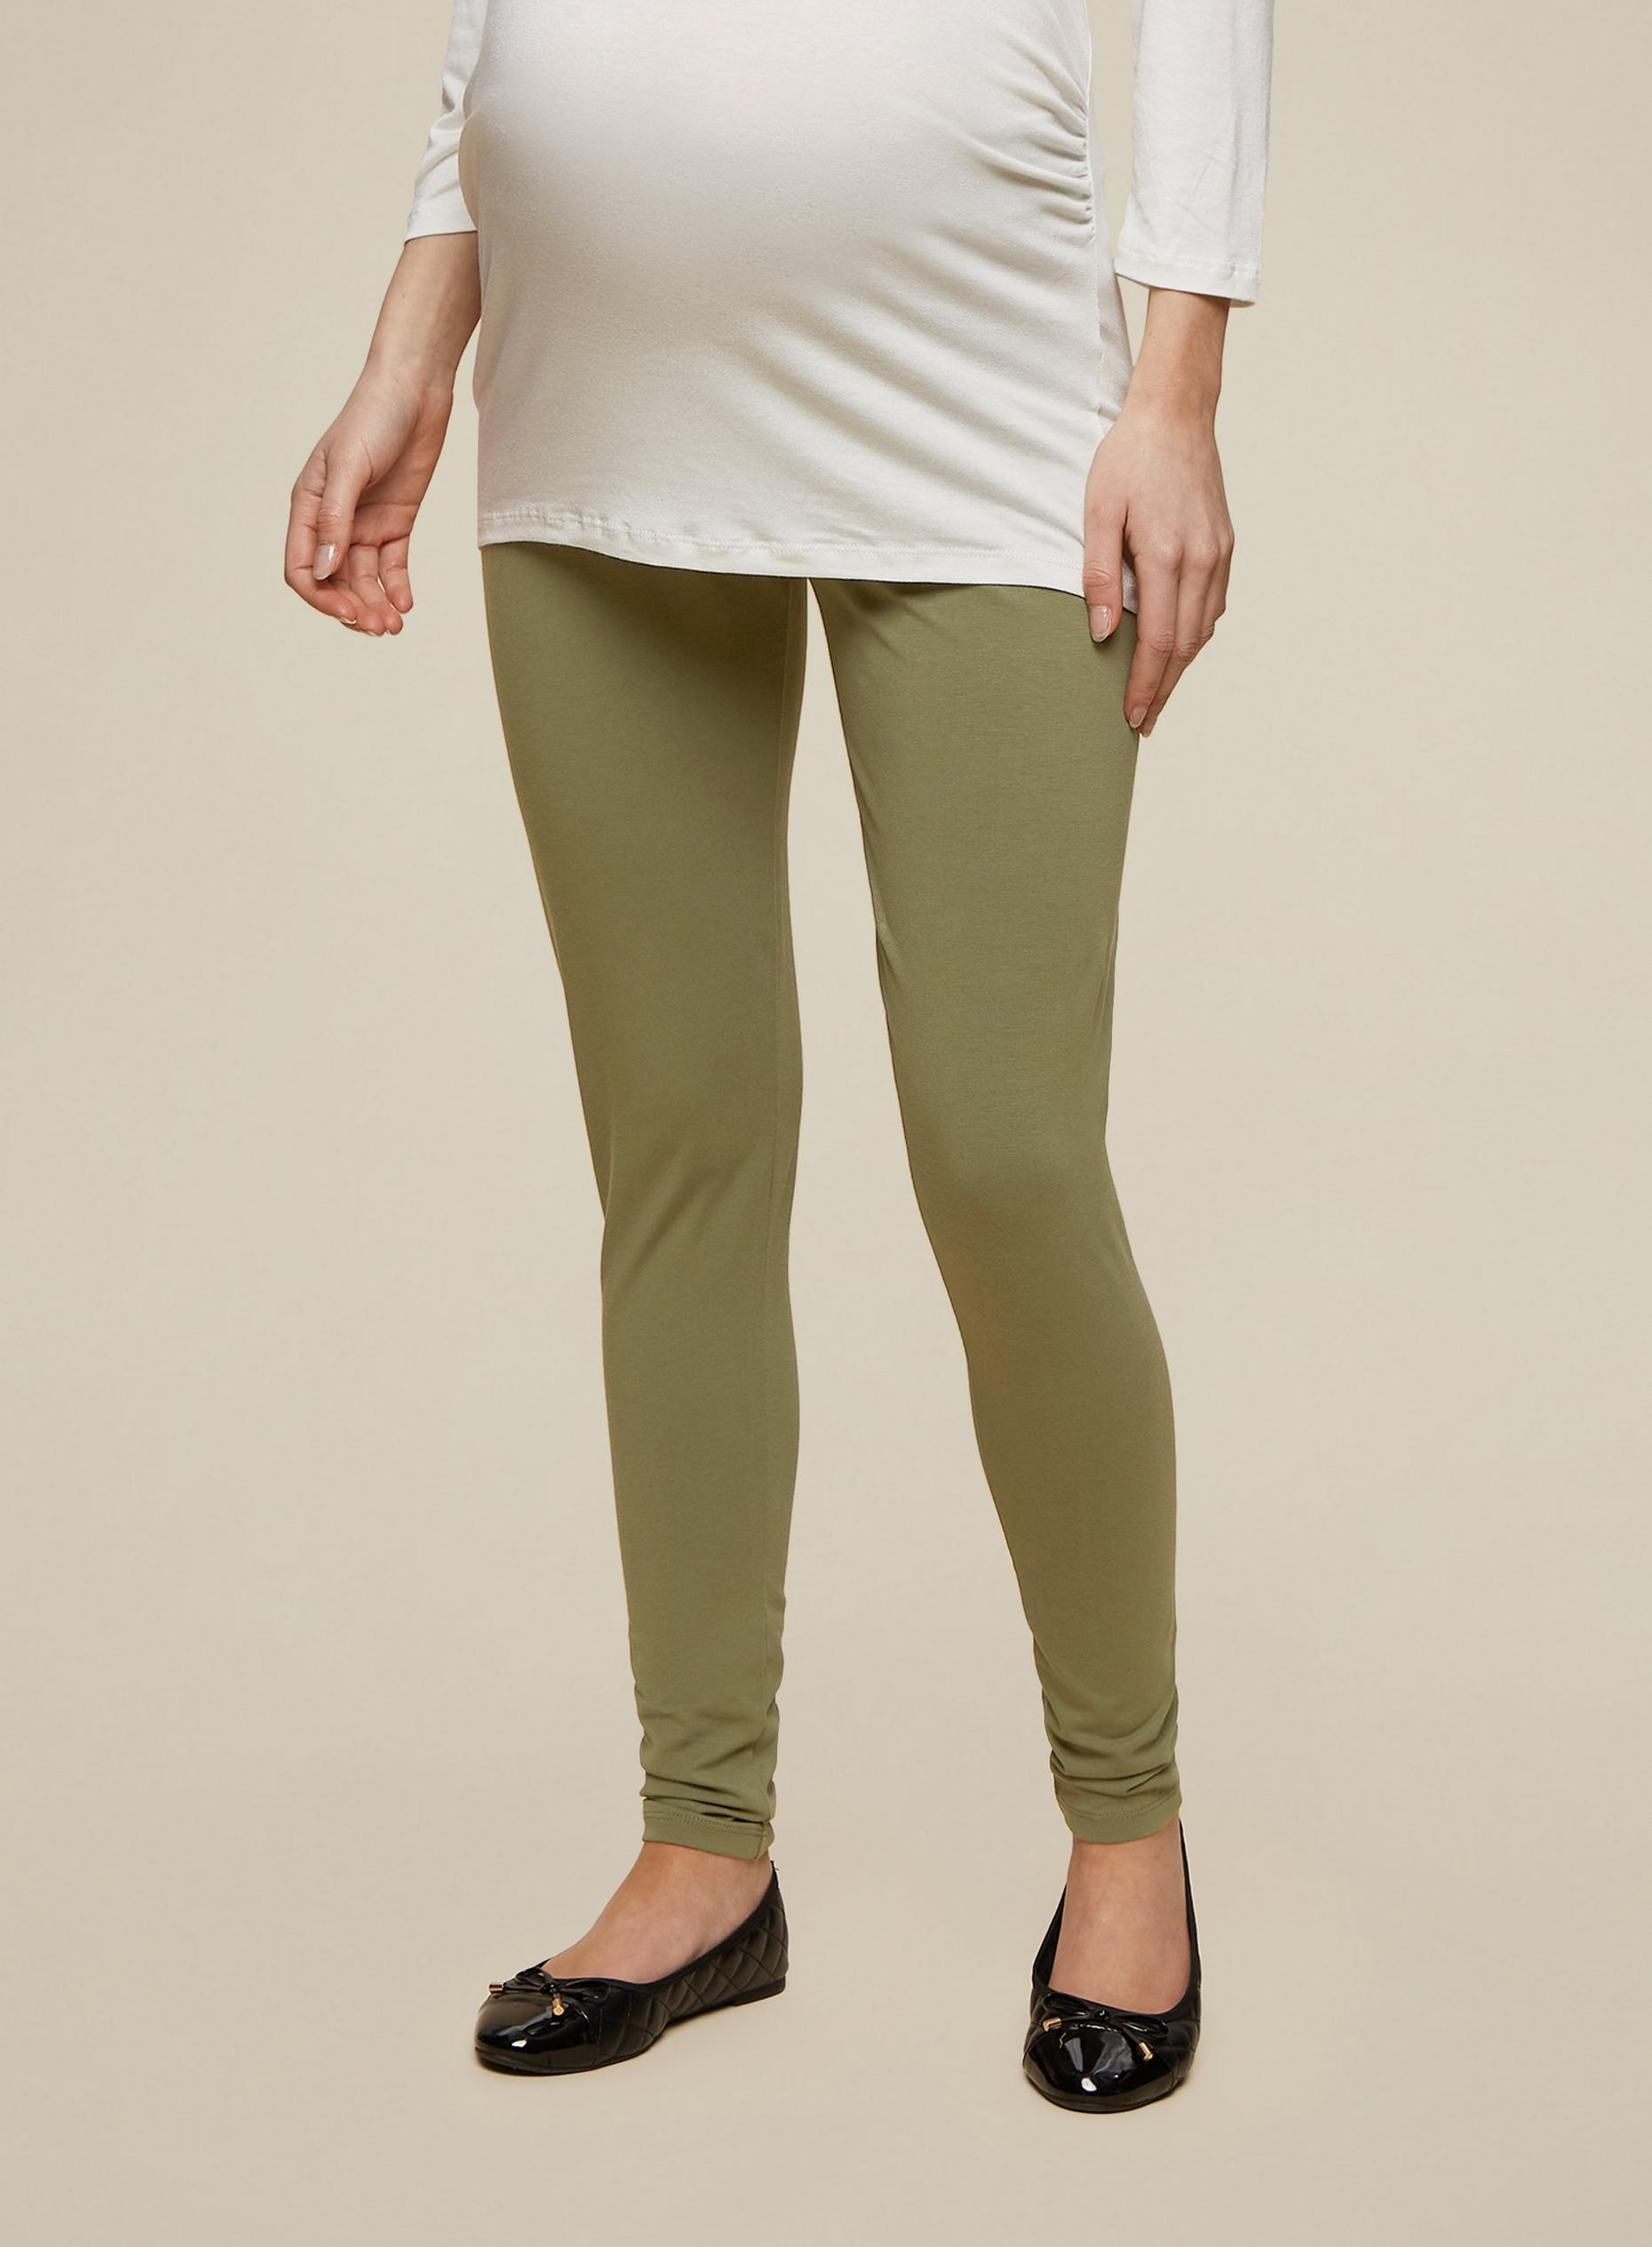 Maternity Khaki Underbump Leggings